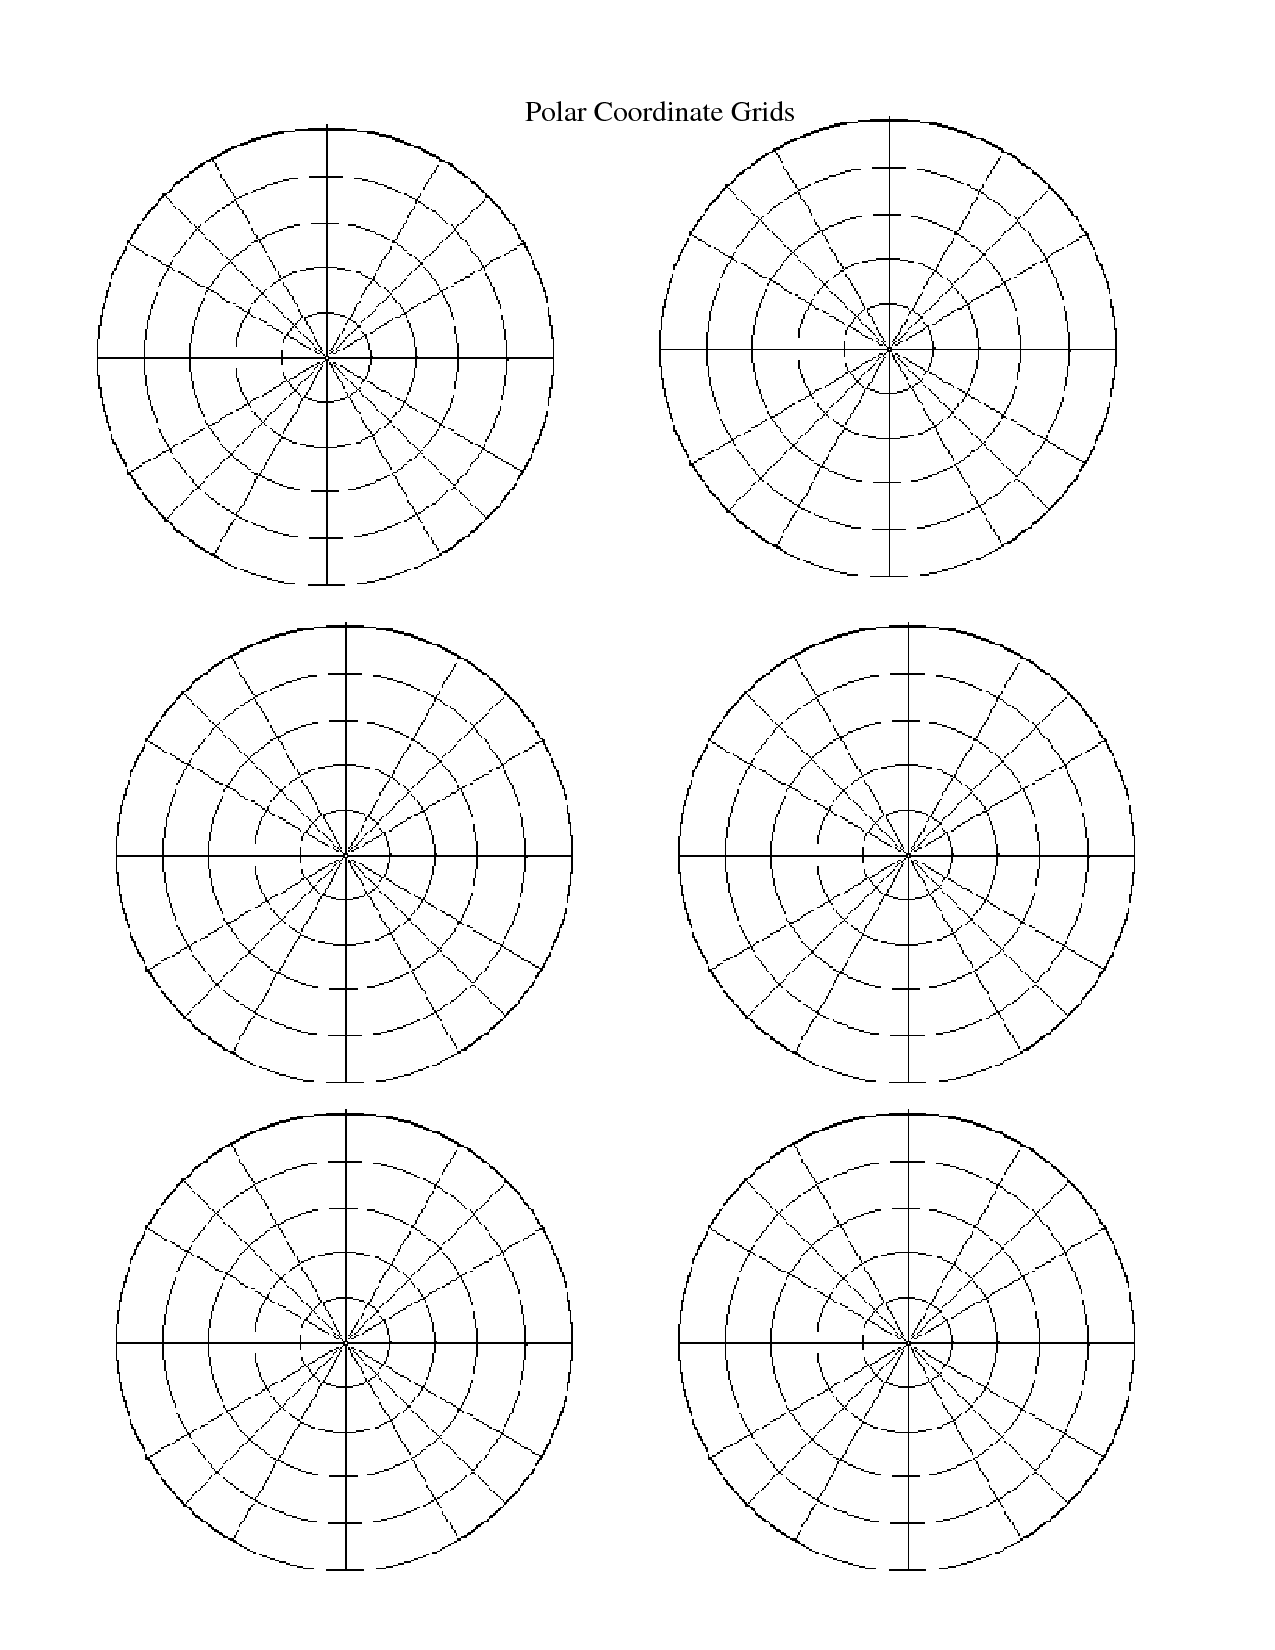 worksheet Polar Coordinates Worksheet south pasadena high school due tuesday may 16